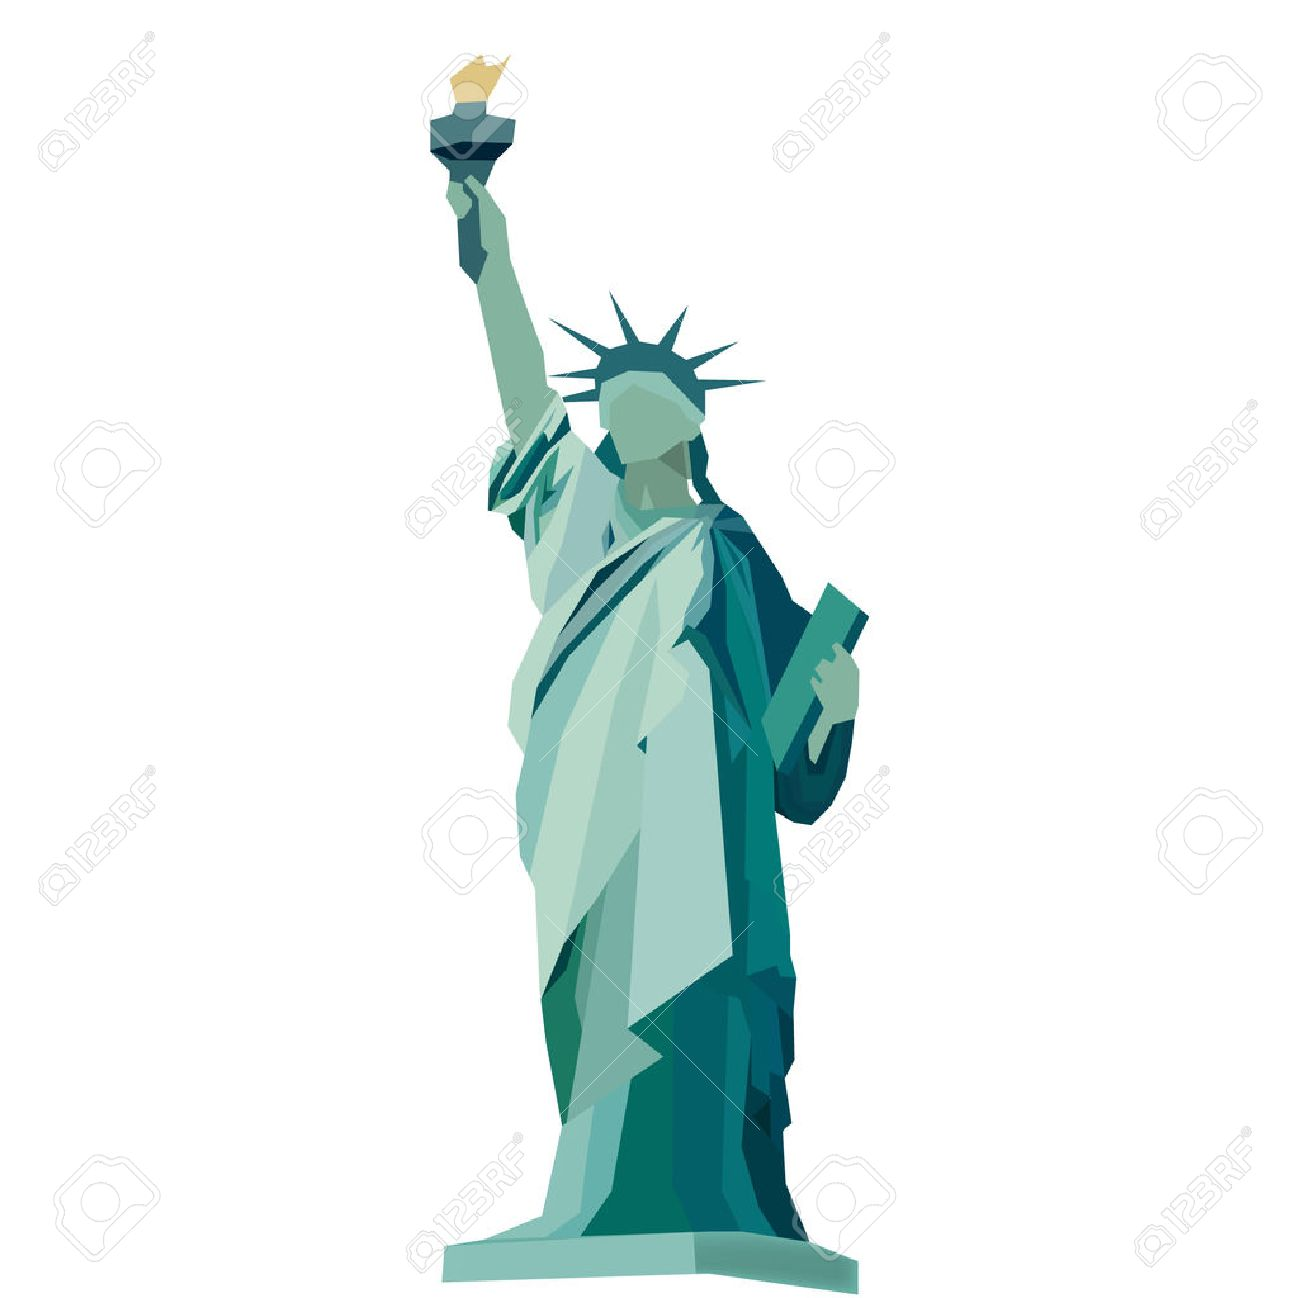 statue of liberty vector royalty free cliparts vectors and stock rh 123rf com statue of liberty vector art free statue of liberty vector image